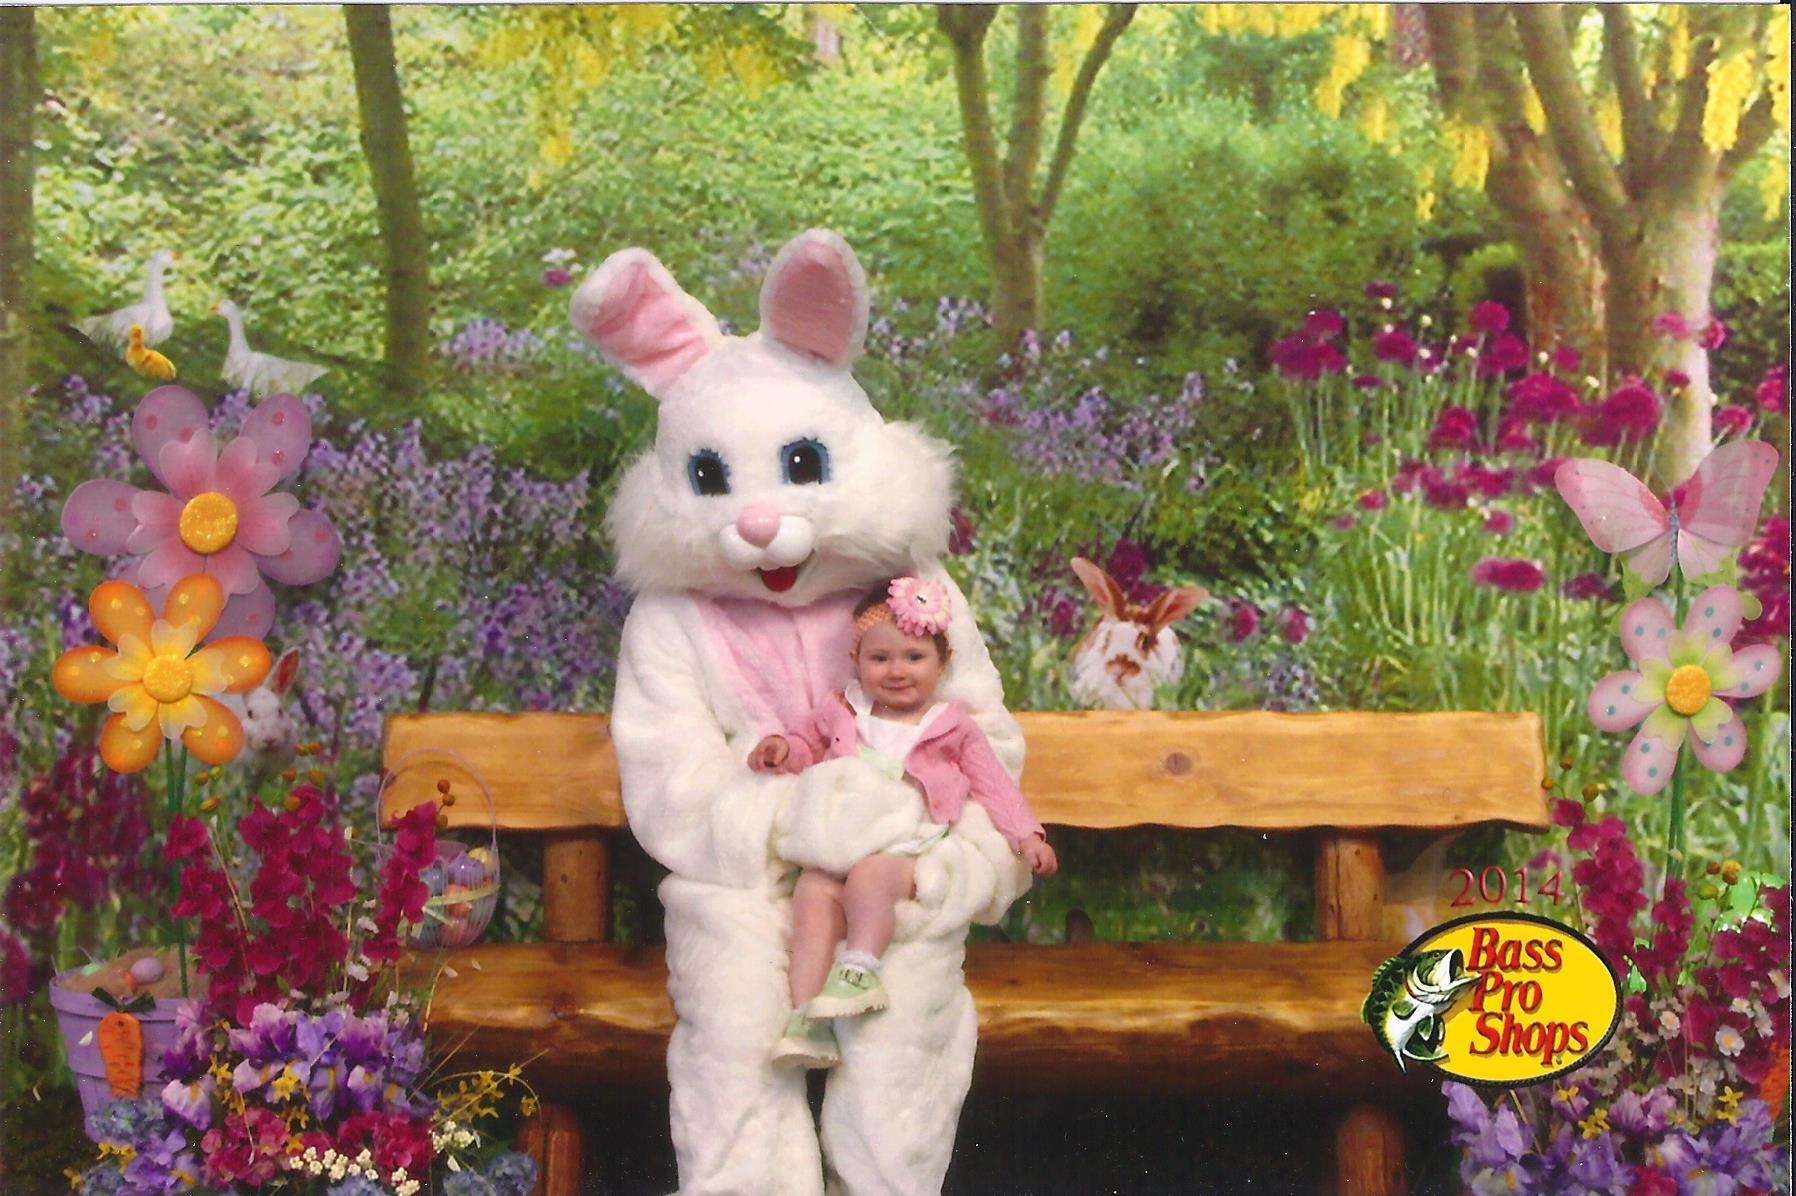 Easter Event - Free Photo at Bass Pro Shops